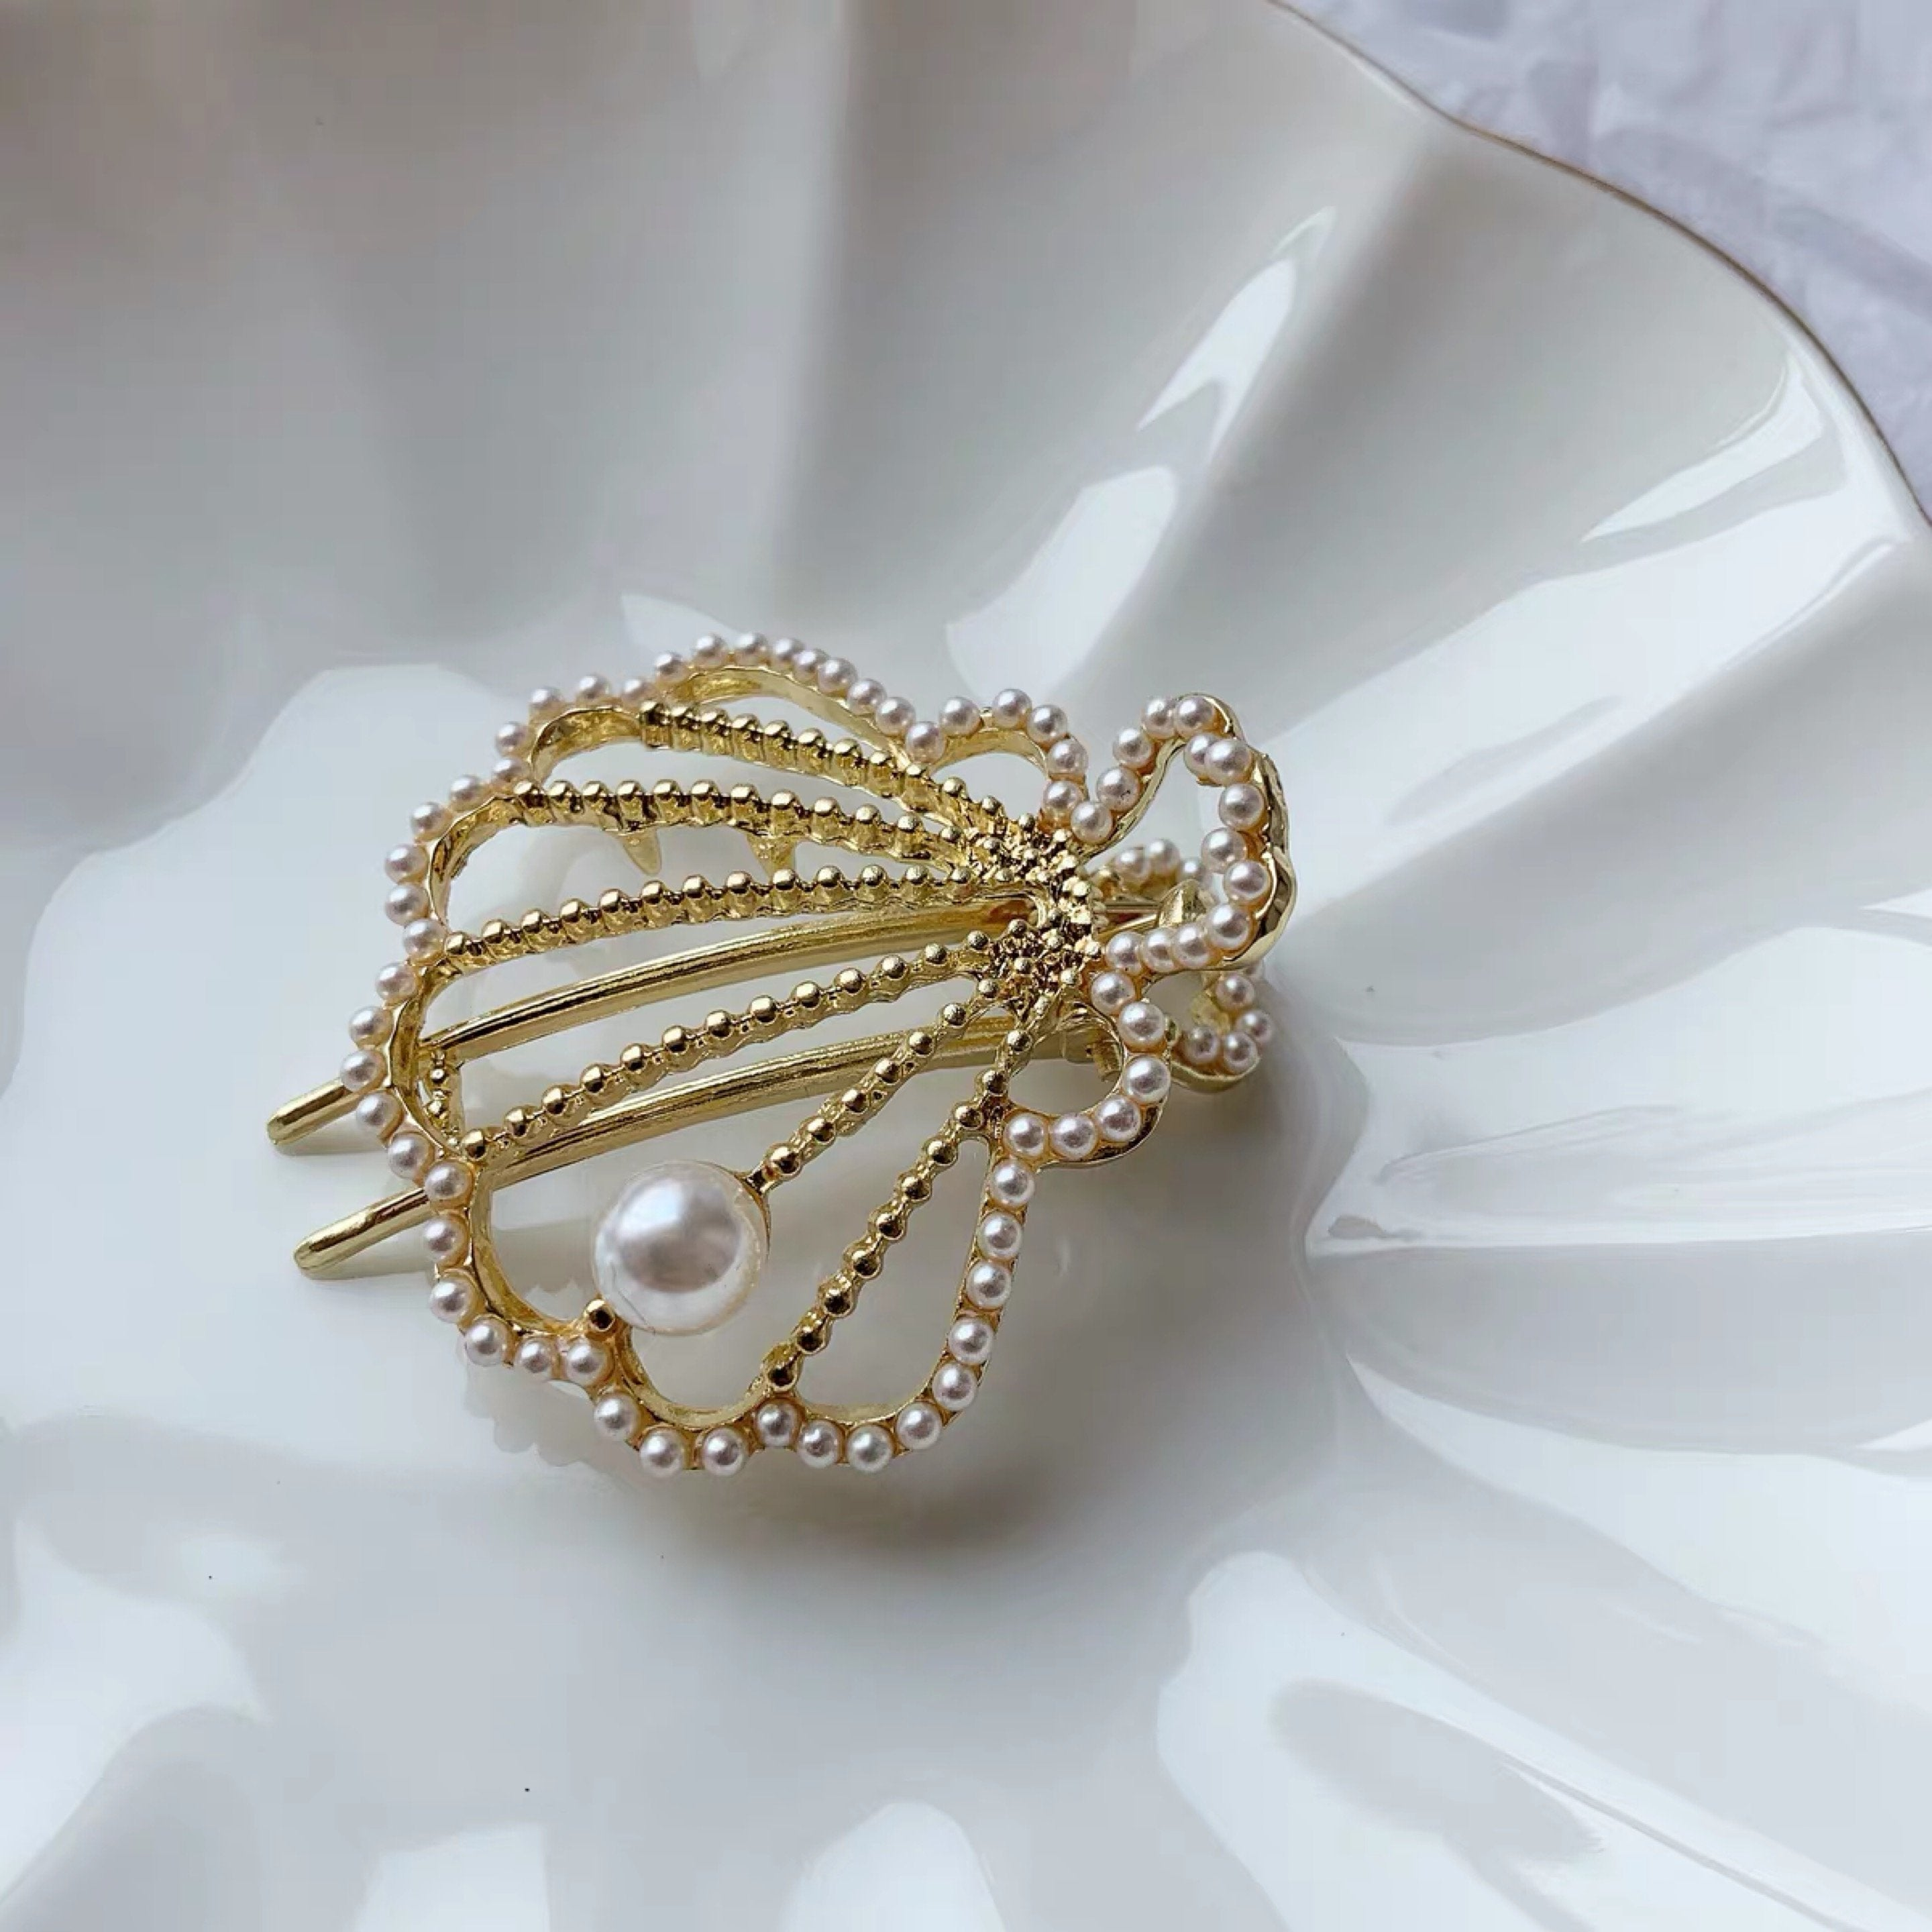 Jewelry Store - Palace Shell Pearls Hairpin Clip